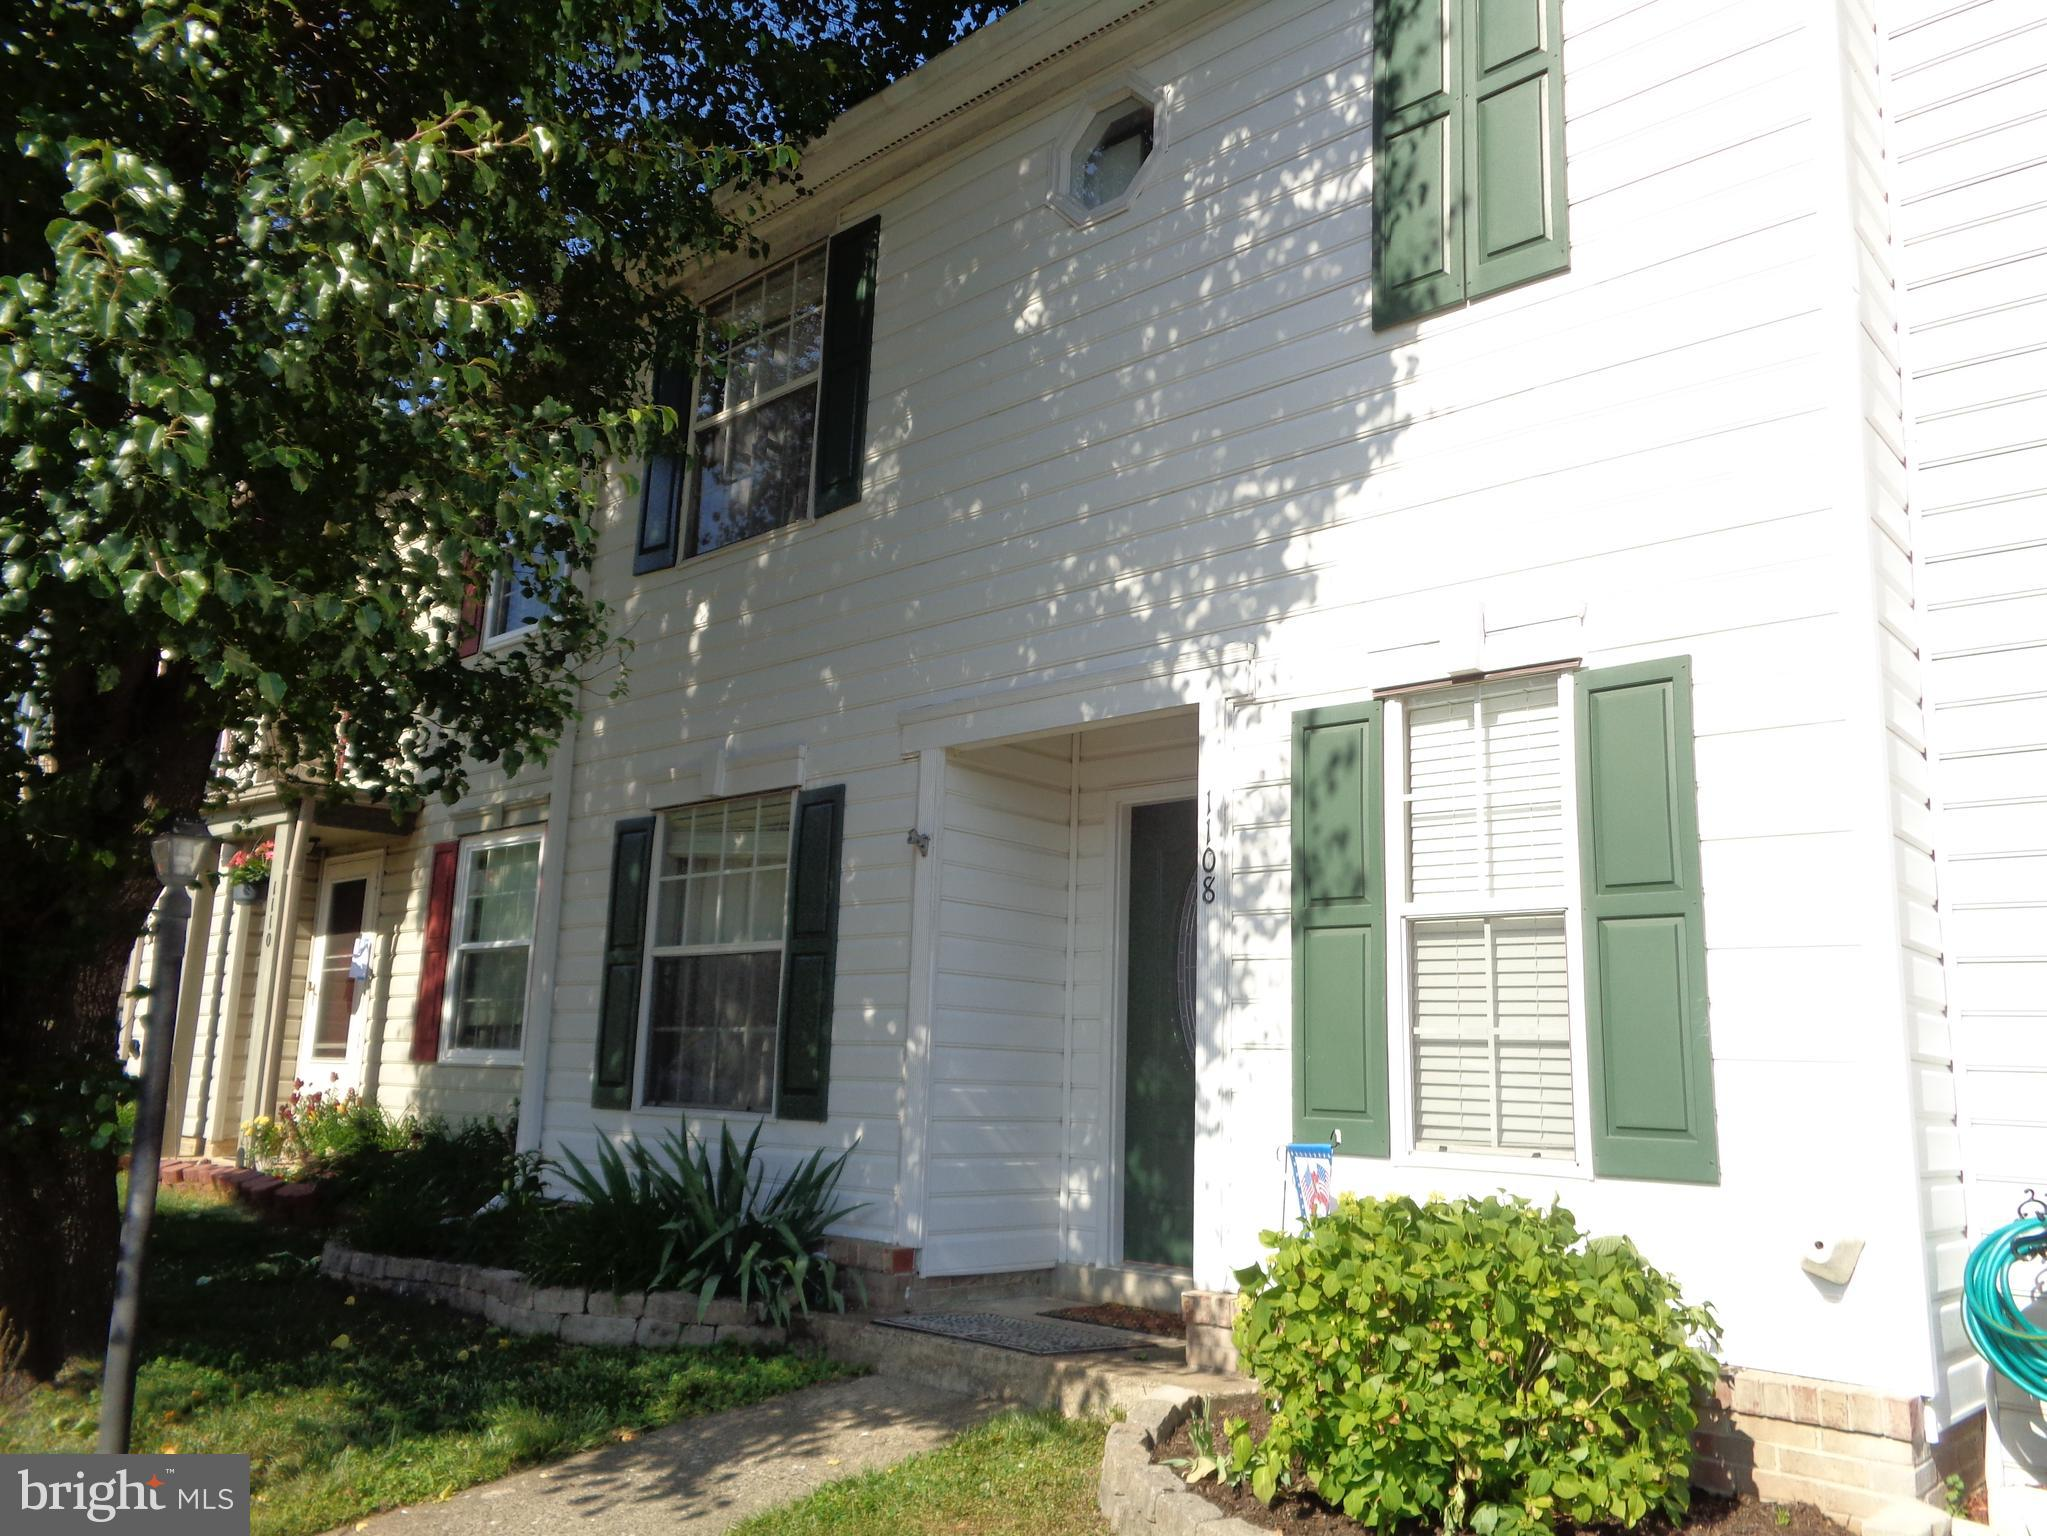 Open and comfortable are the only words to describe this charming 3 bed, 2.5 bath townhome. Close to I 95, US 1 and Washington DC. Conveniently located on US 1 close to shopping and commuter parking areas. Minutes from Quantico Marine Corps Base and all points North. Close to Fredericksburg and Richmond.   New carpet and paint installed 9 months ago. The HOA fees features pool, trash, snow removal, and many more amenities. Property is vacant and ready for new owners.